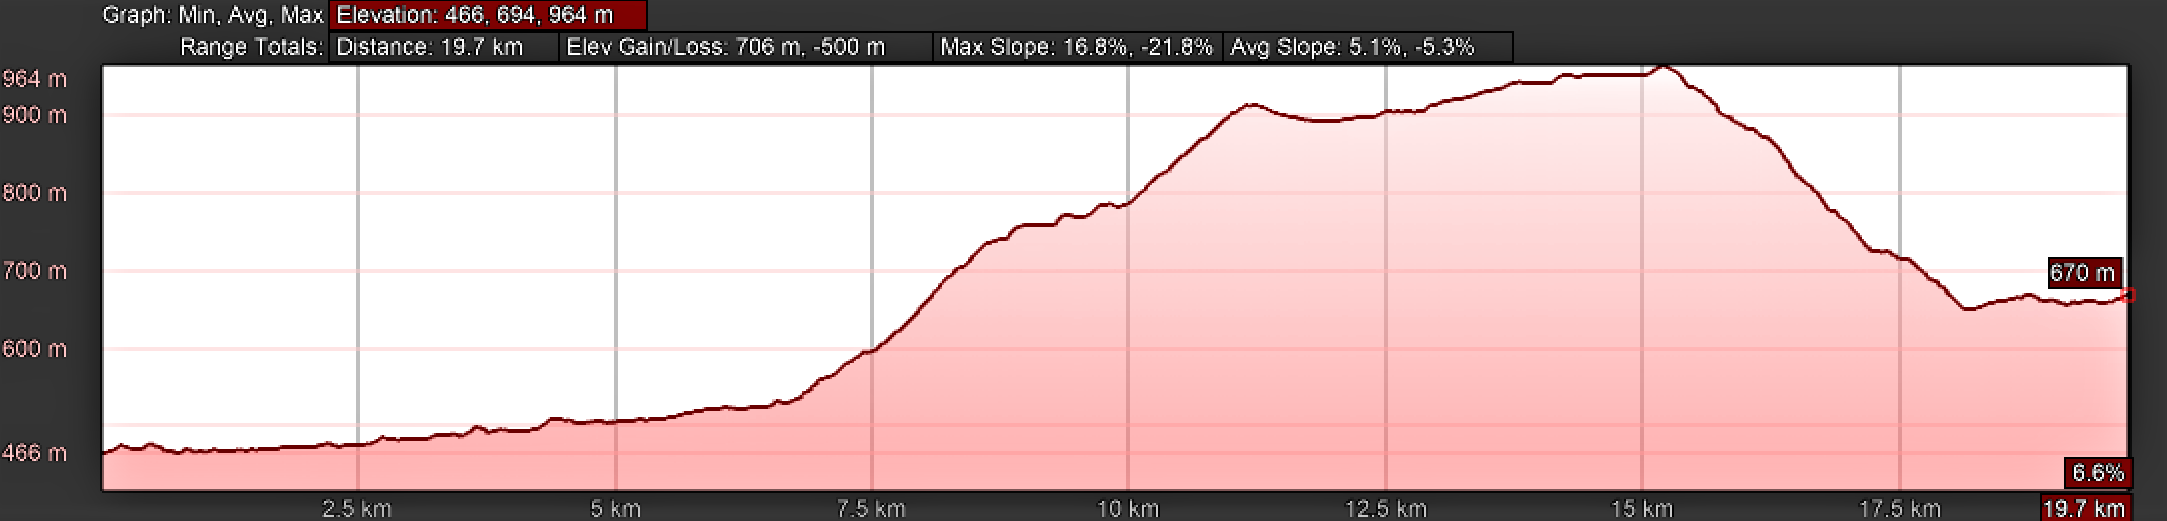 Elevation Profile, Camino Sanabrés, A Laza to Vilar de Barrio